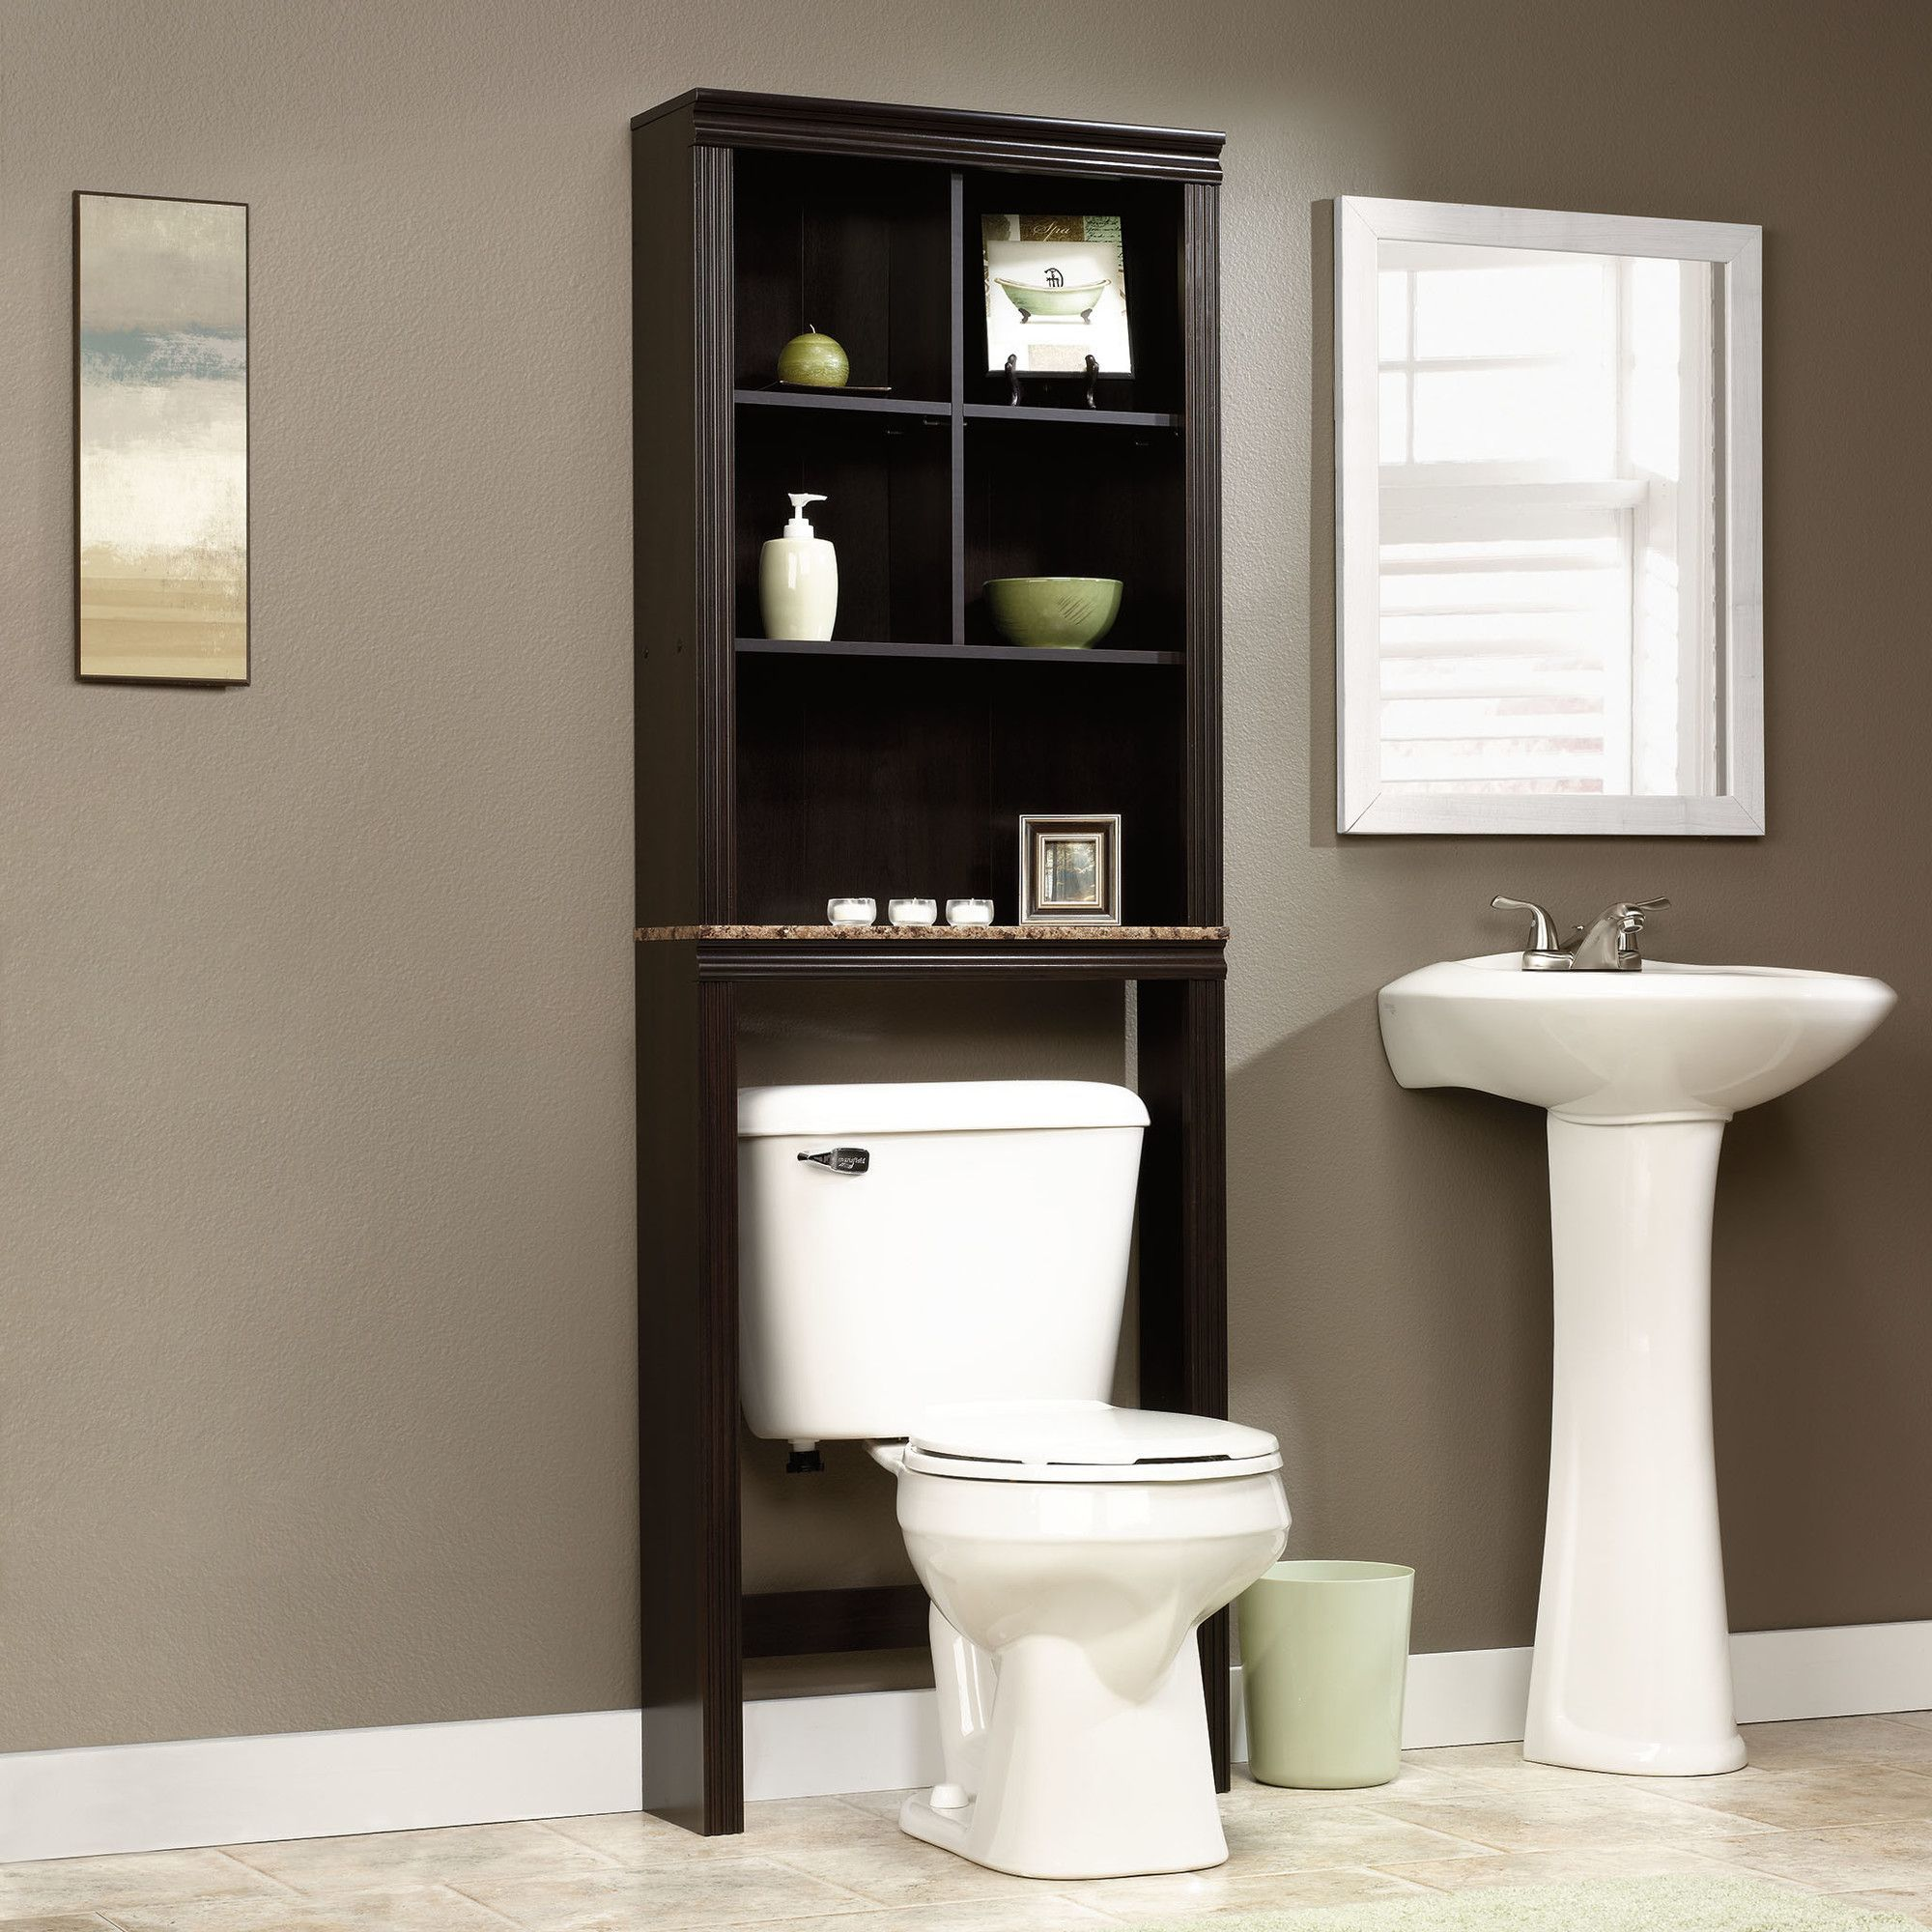 space saving faux granite finish shelf fits bathroom cabinets over toiletover - Bathroom Cabinets That Fit Over The Toilet